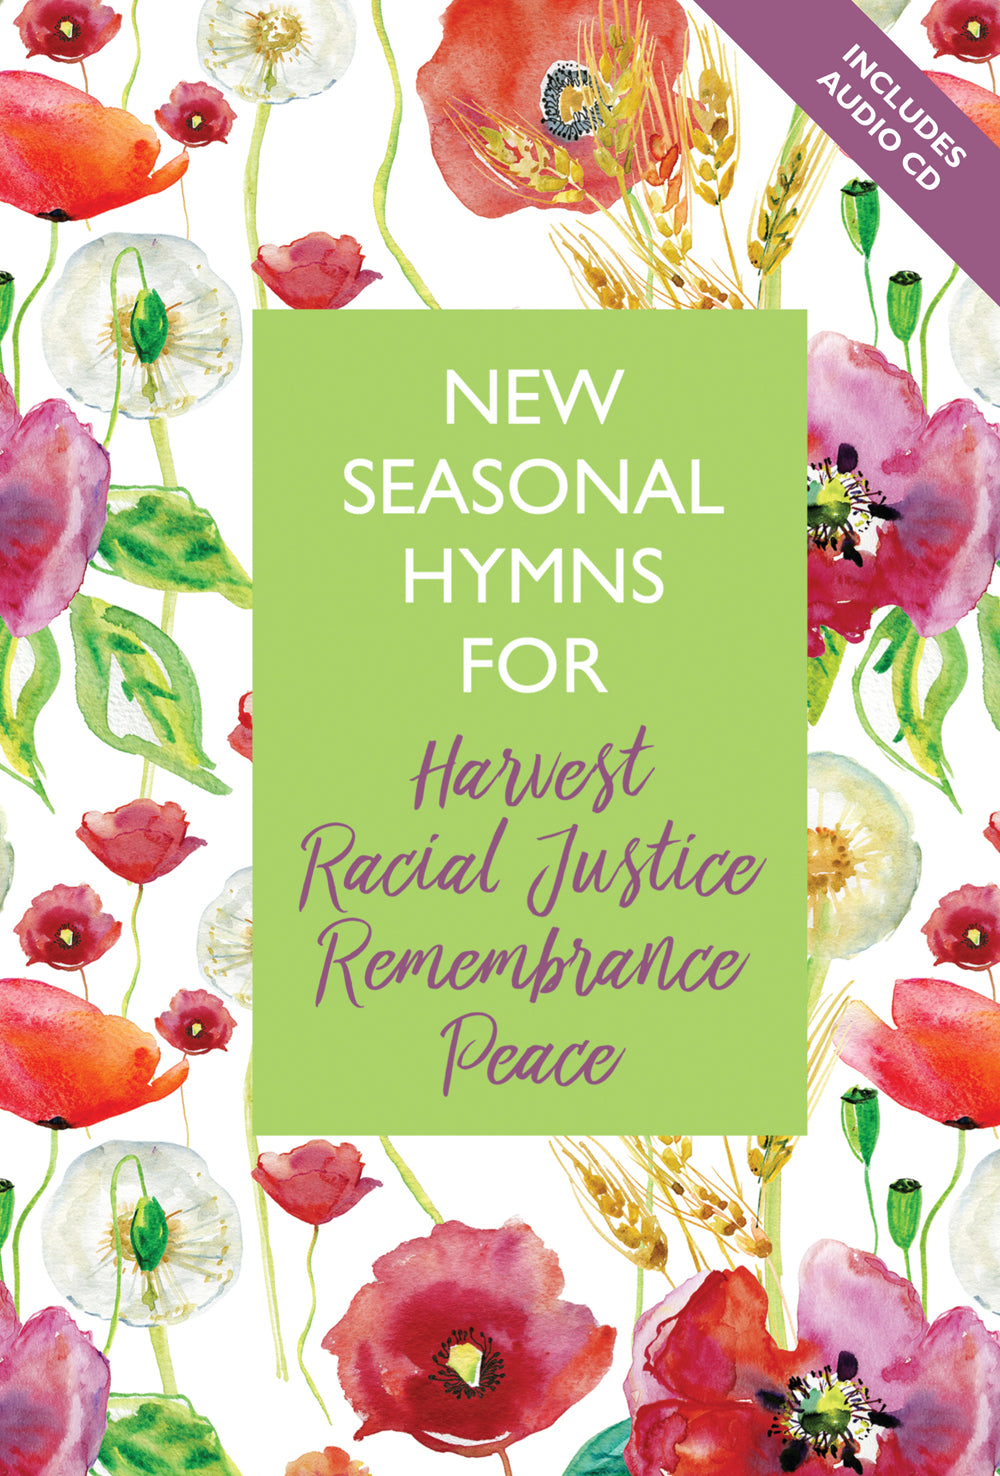 New Seasonal Hymns For Remebrance, Harvest, All Saints, All Souls (Book & Cd)New Seasonal Hymns For Remebrance, Harvest, All Saints, All Souls (Book & Cd)